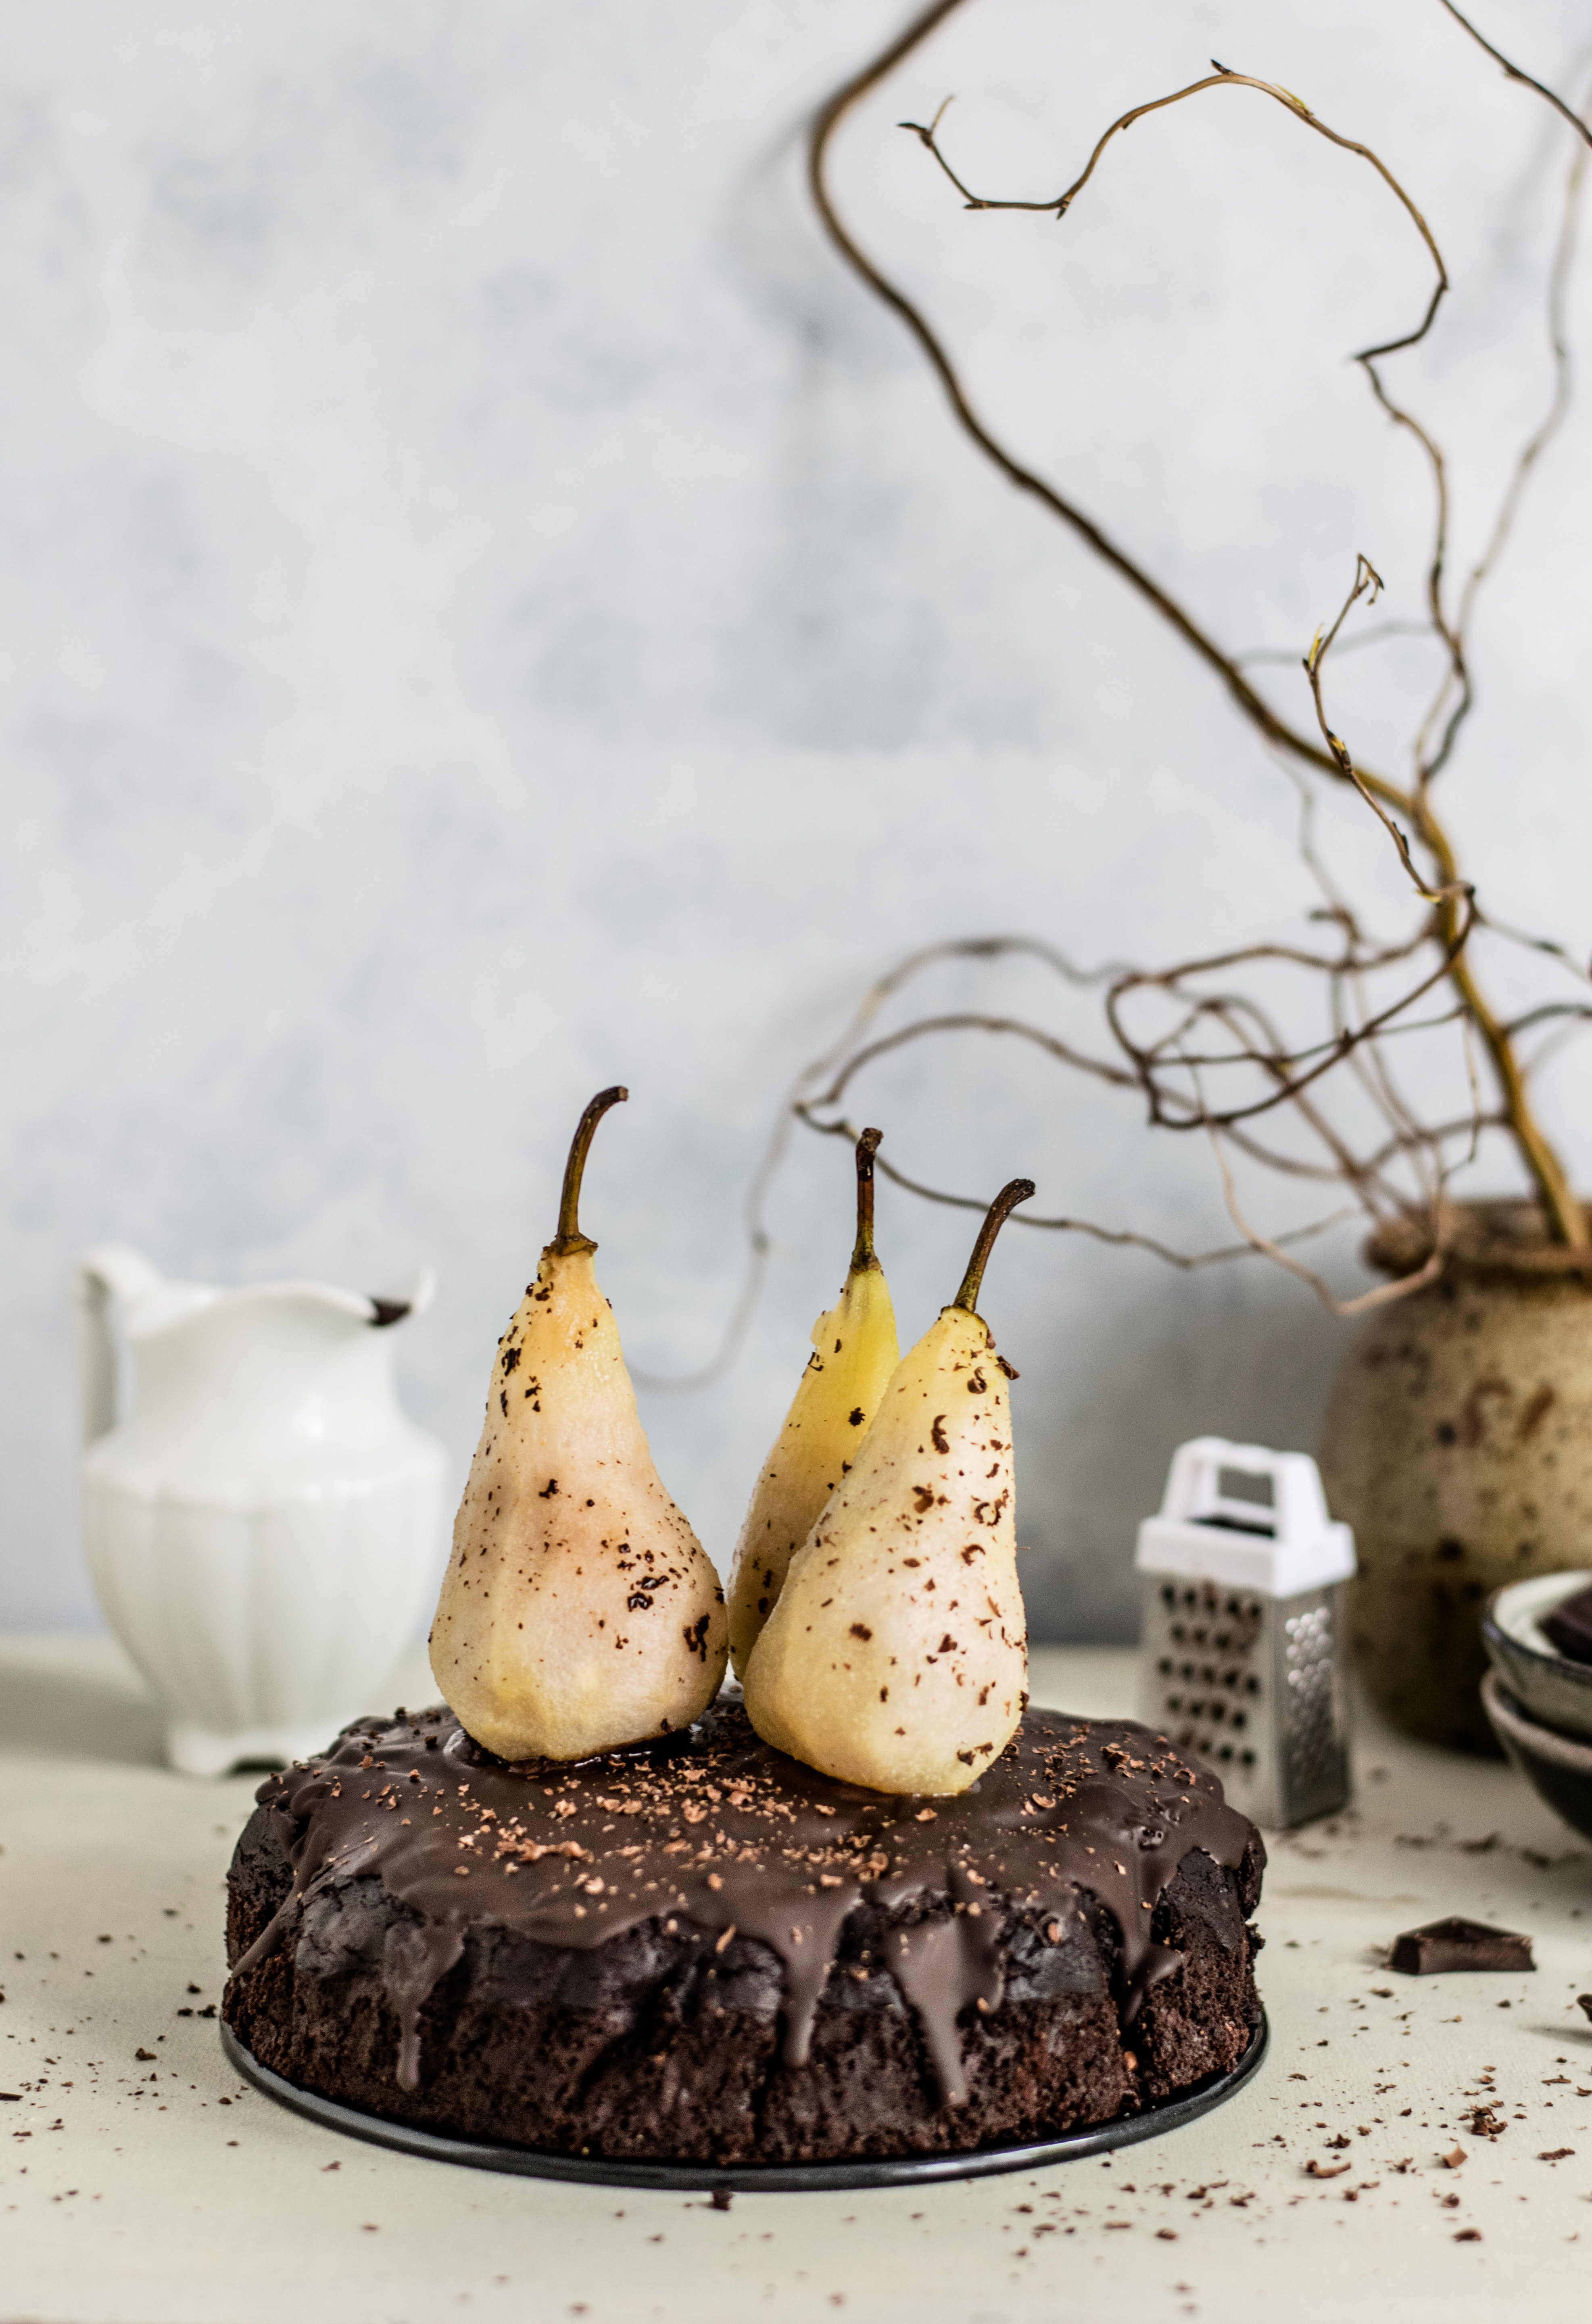 pears on top of cake